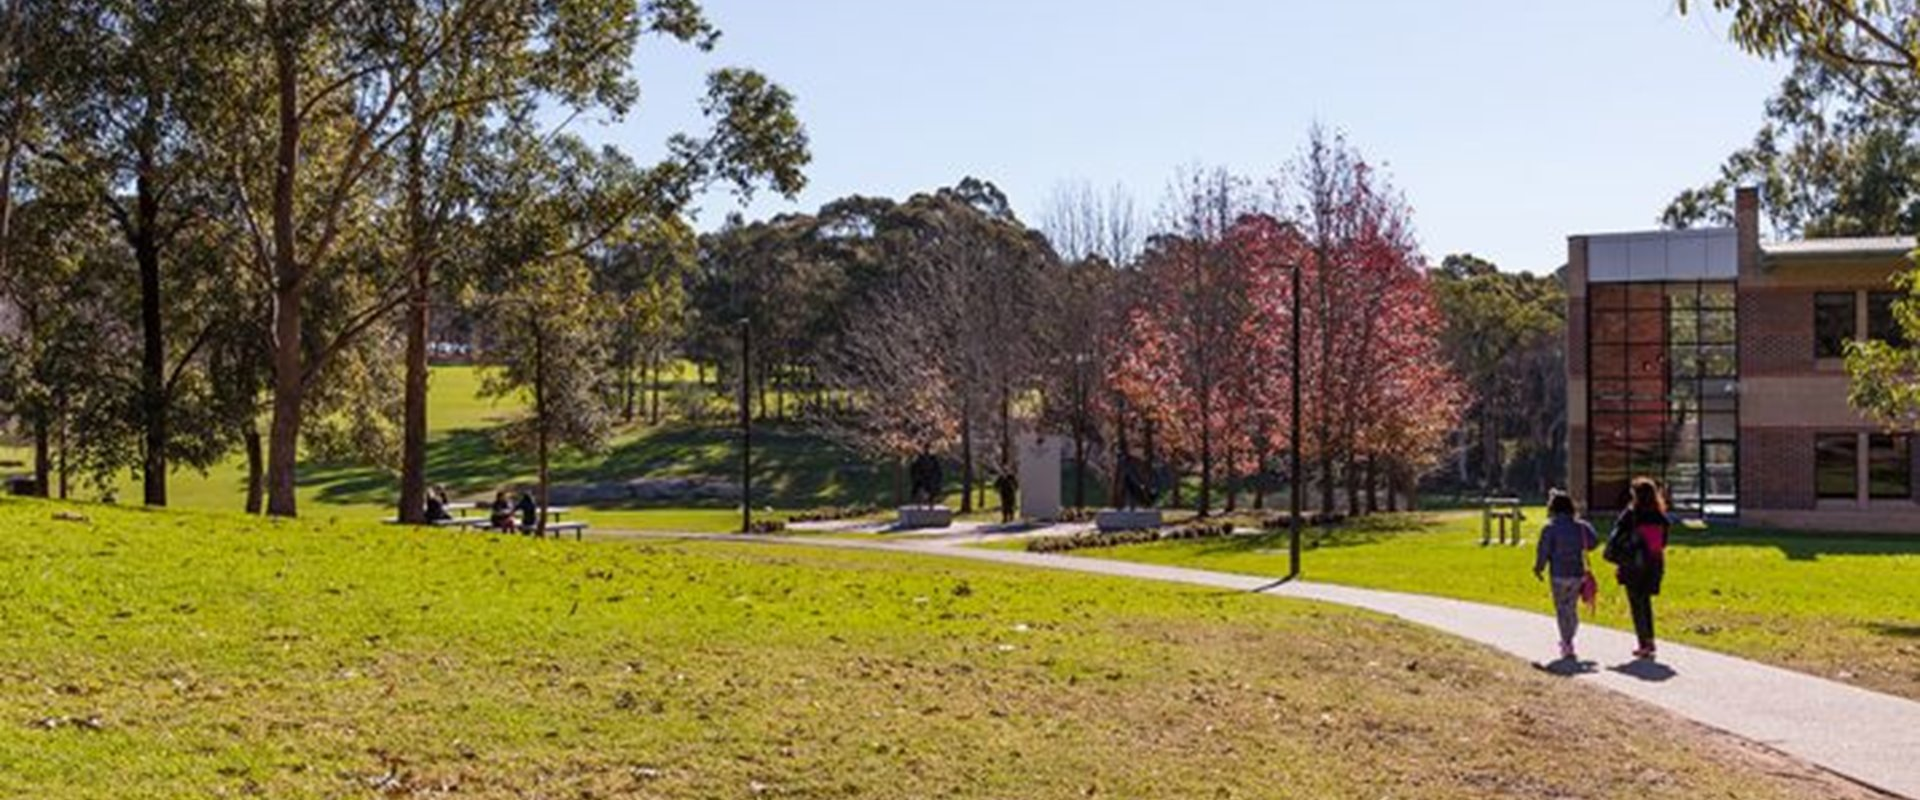 Sydney Surrounds - MGSM Executive Centres – Macquarie Park | Conference Venues Sydney | Conference Venues New South Wales